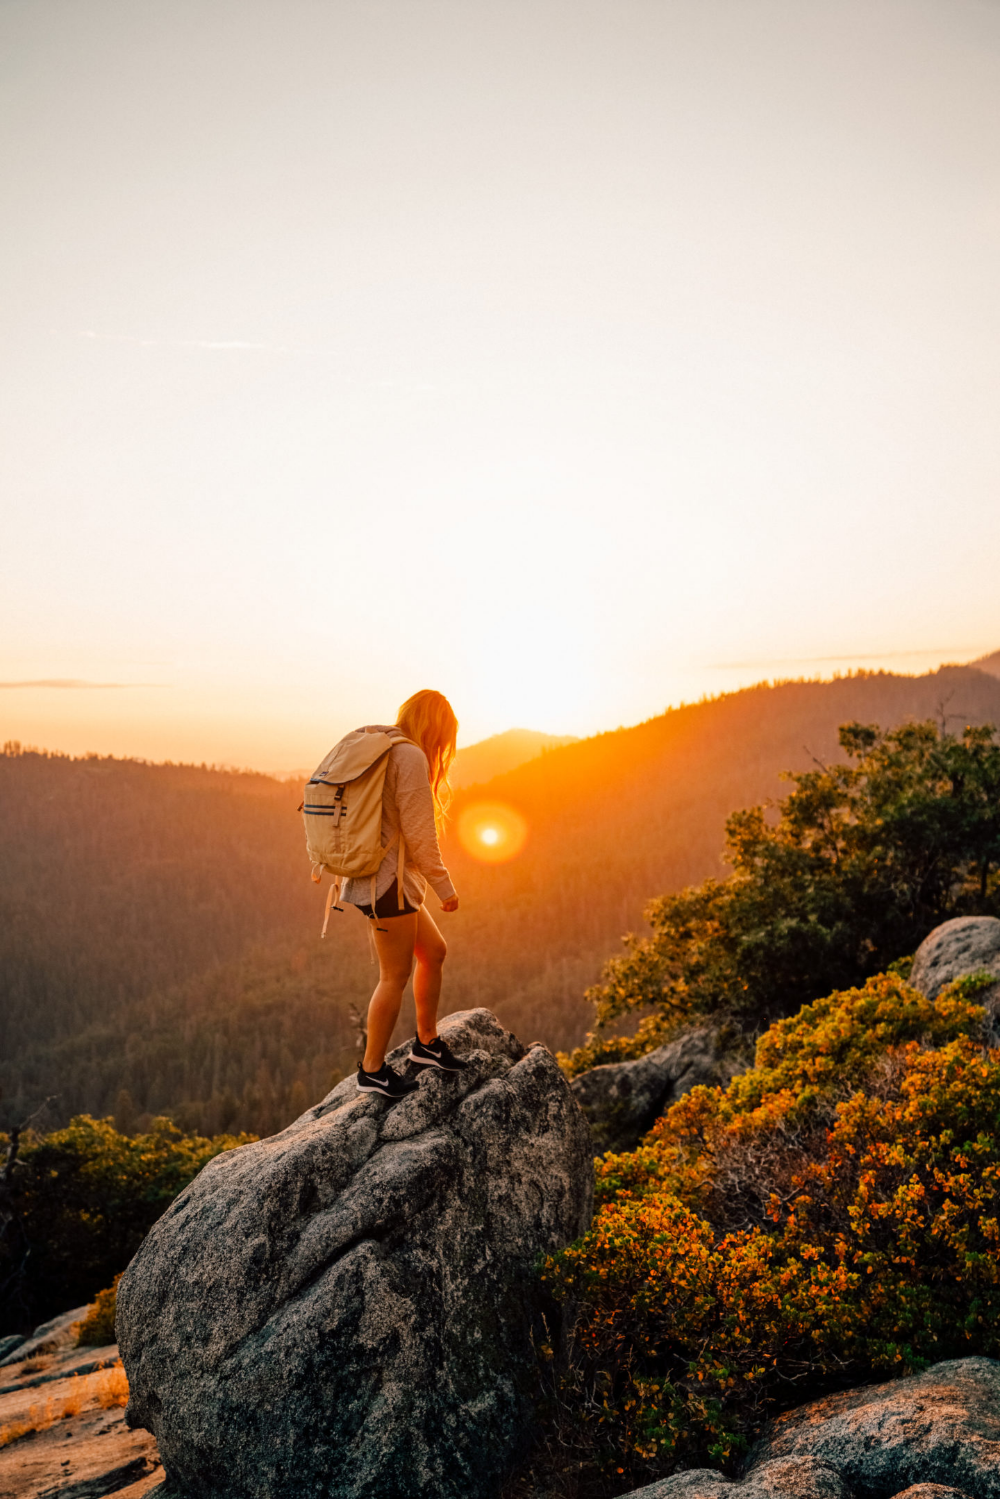 Summer Hiking in Sequoia National Park - Finding Jules  Backcountry, Gearheads, Patagonia, Sequoia National Park, Sequoia, National Parks, Summer Hiking, California, Visit California, Cute Hiking Outfits, Casual Hiking Outfit